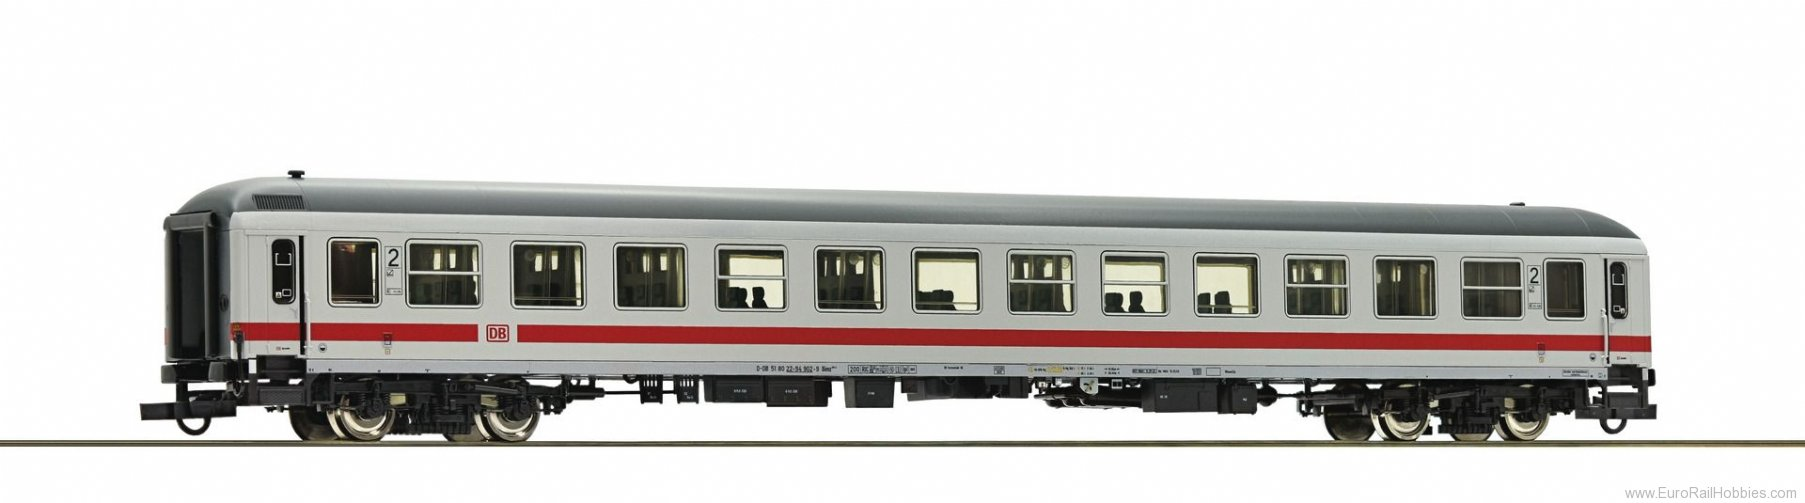 Roco 74364 2nd class IC compartment coach, DB AG